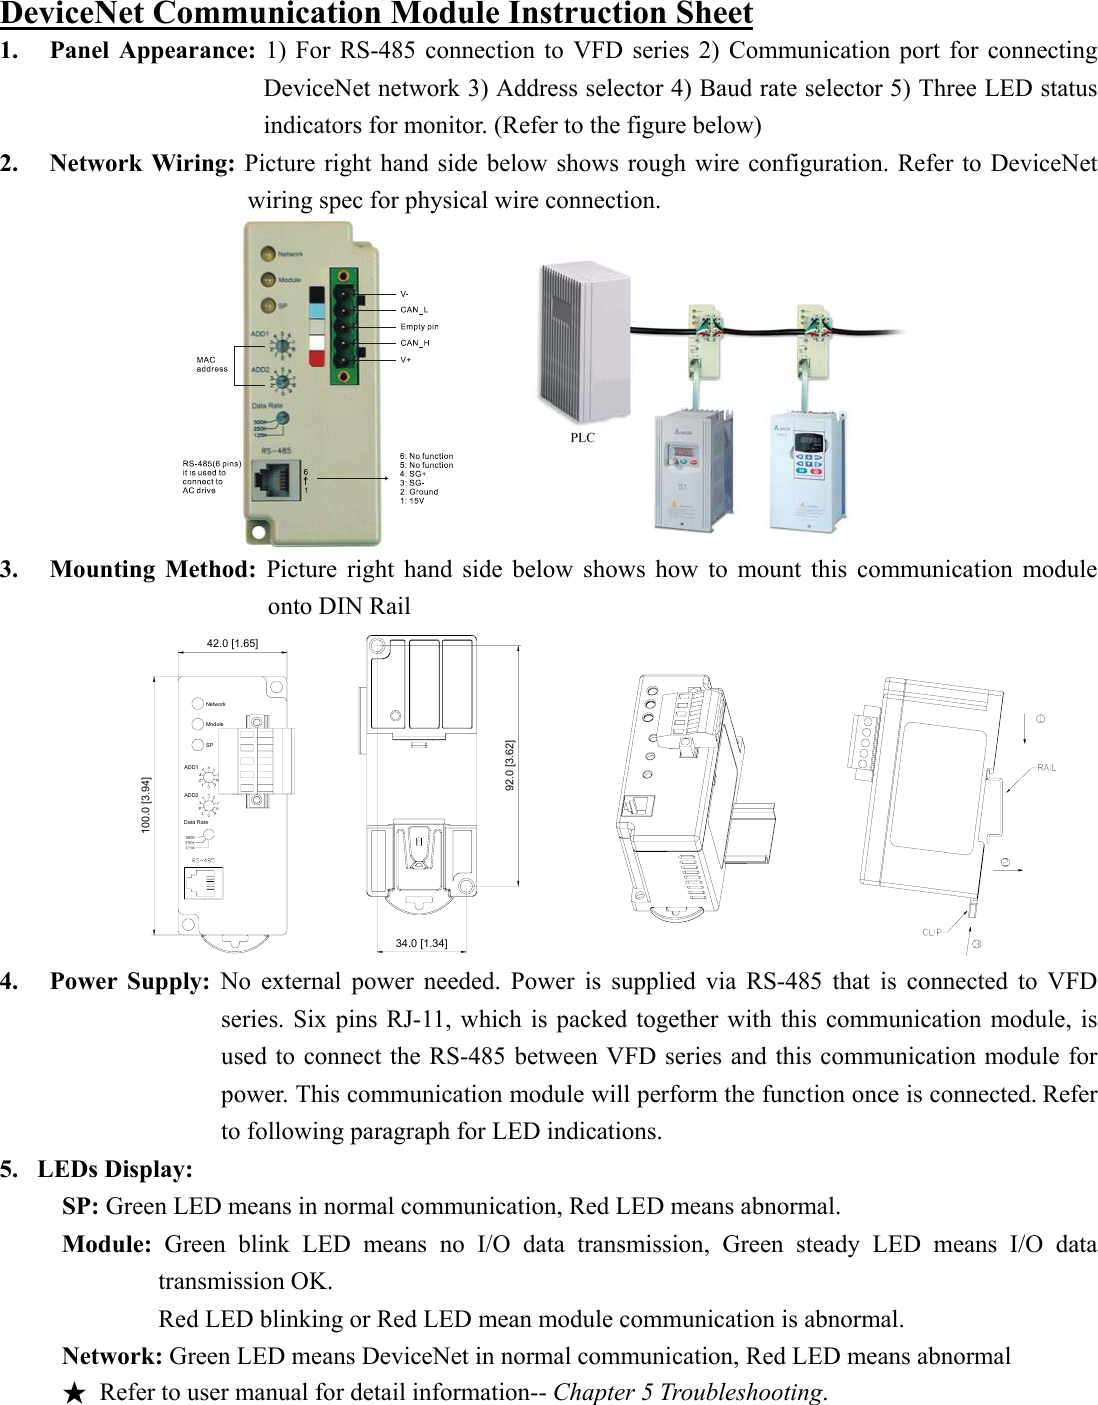 Delta Network Device Dn02 Users Manual 5011622001 Dni1 Devicenet Wiring Diagram